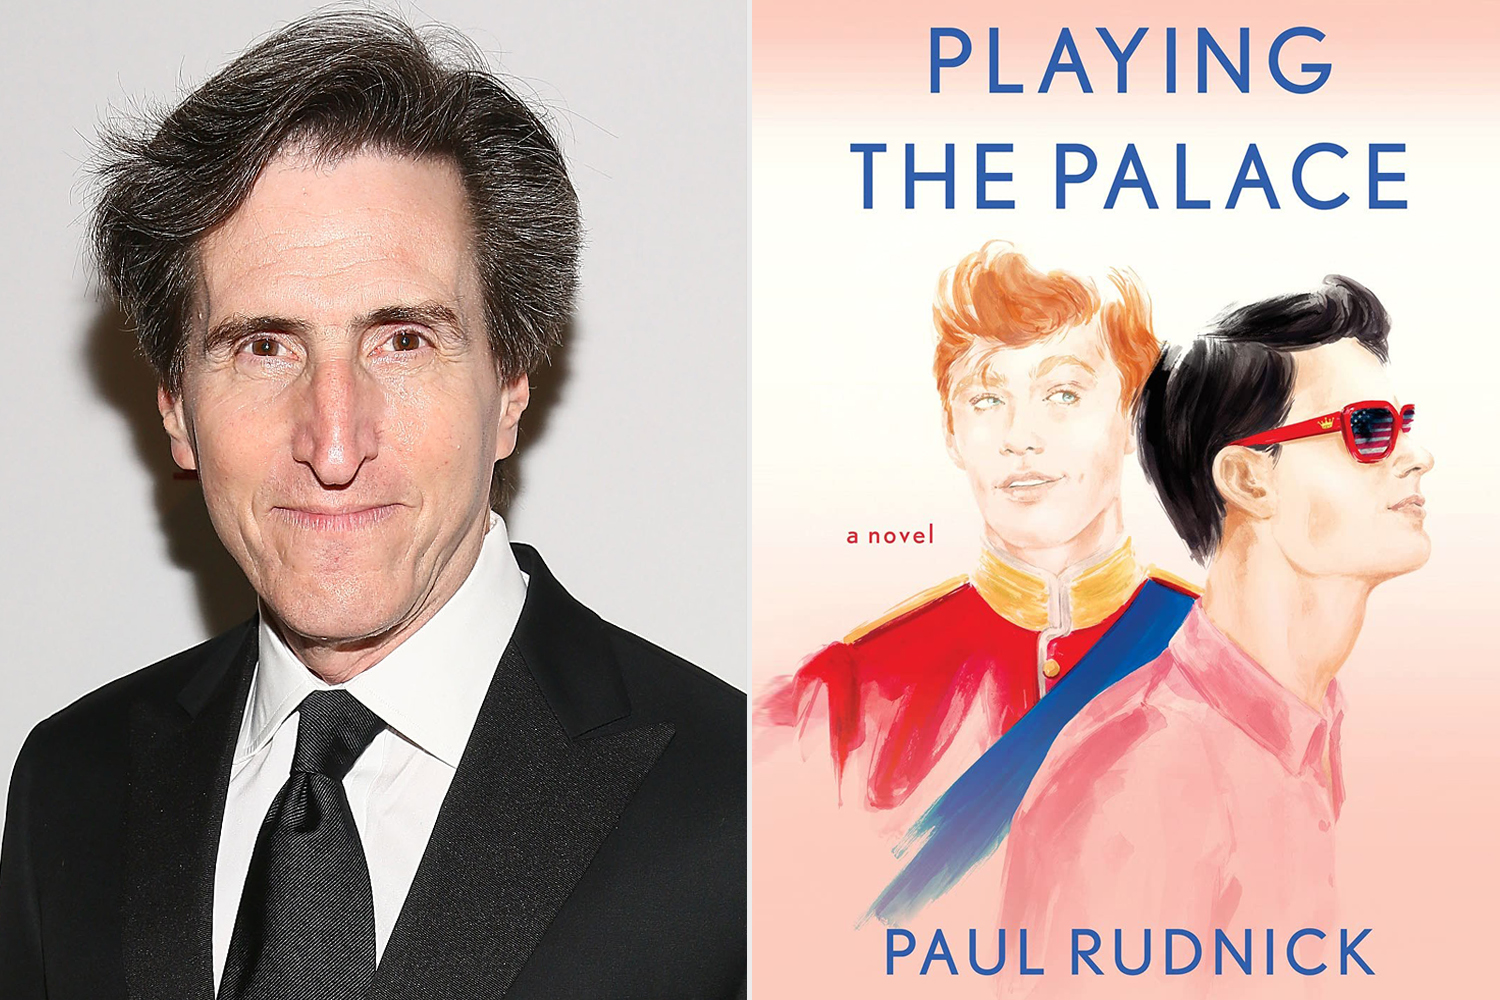 Paul Rudnick; Playing the Palace by Paul Rudnick